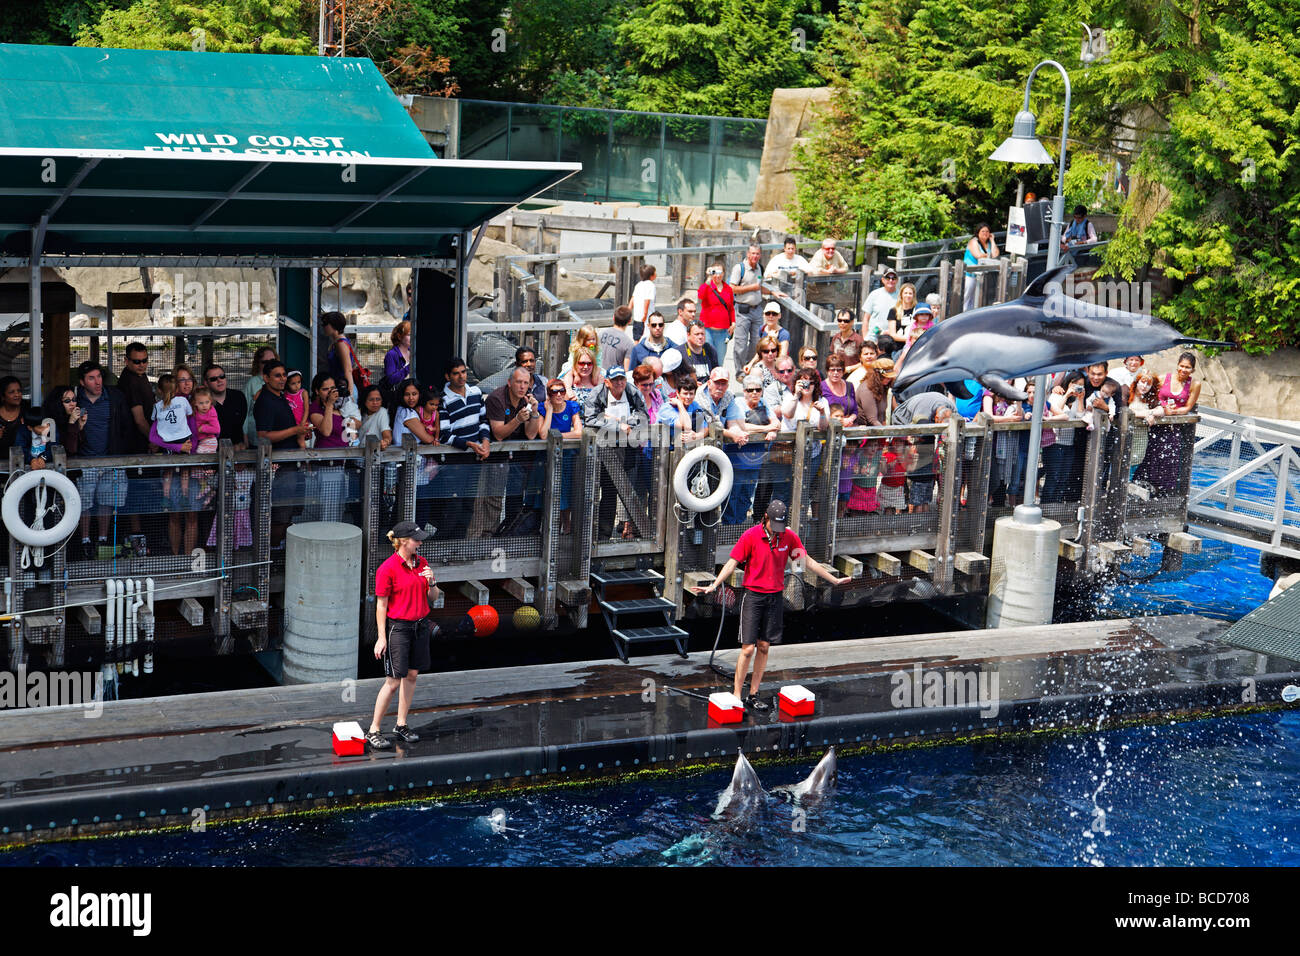 Dolphin show in Aquarium in Vancouver City Stanley Park Canada North America - Stock Image